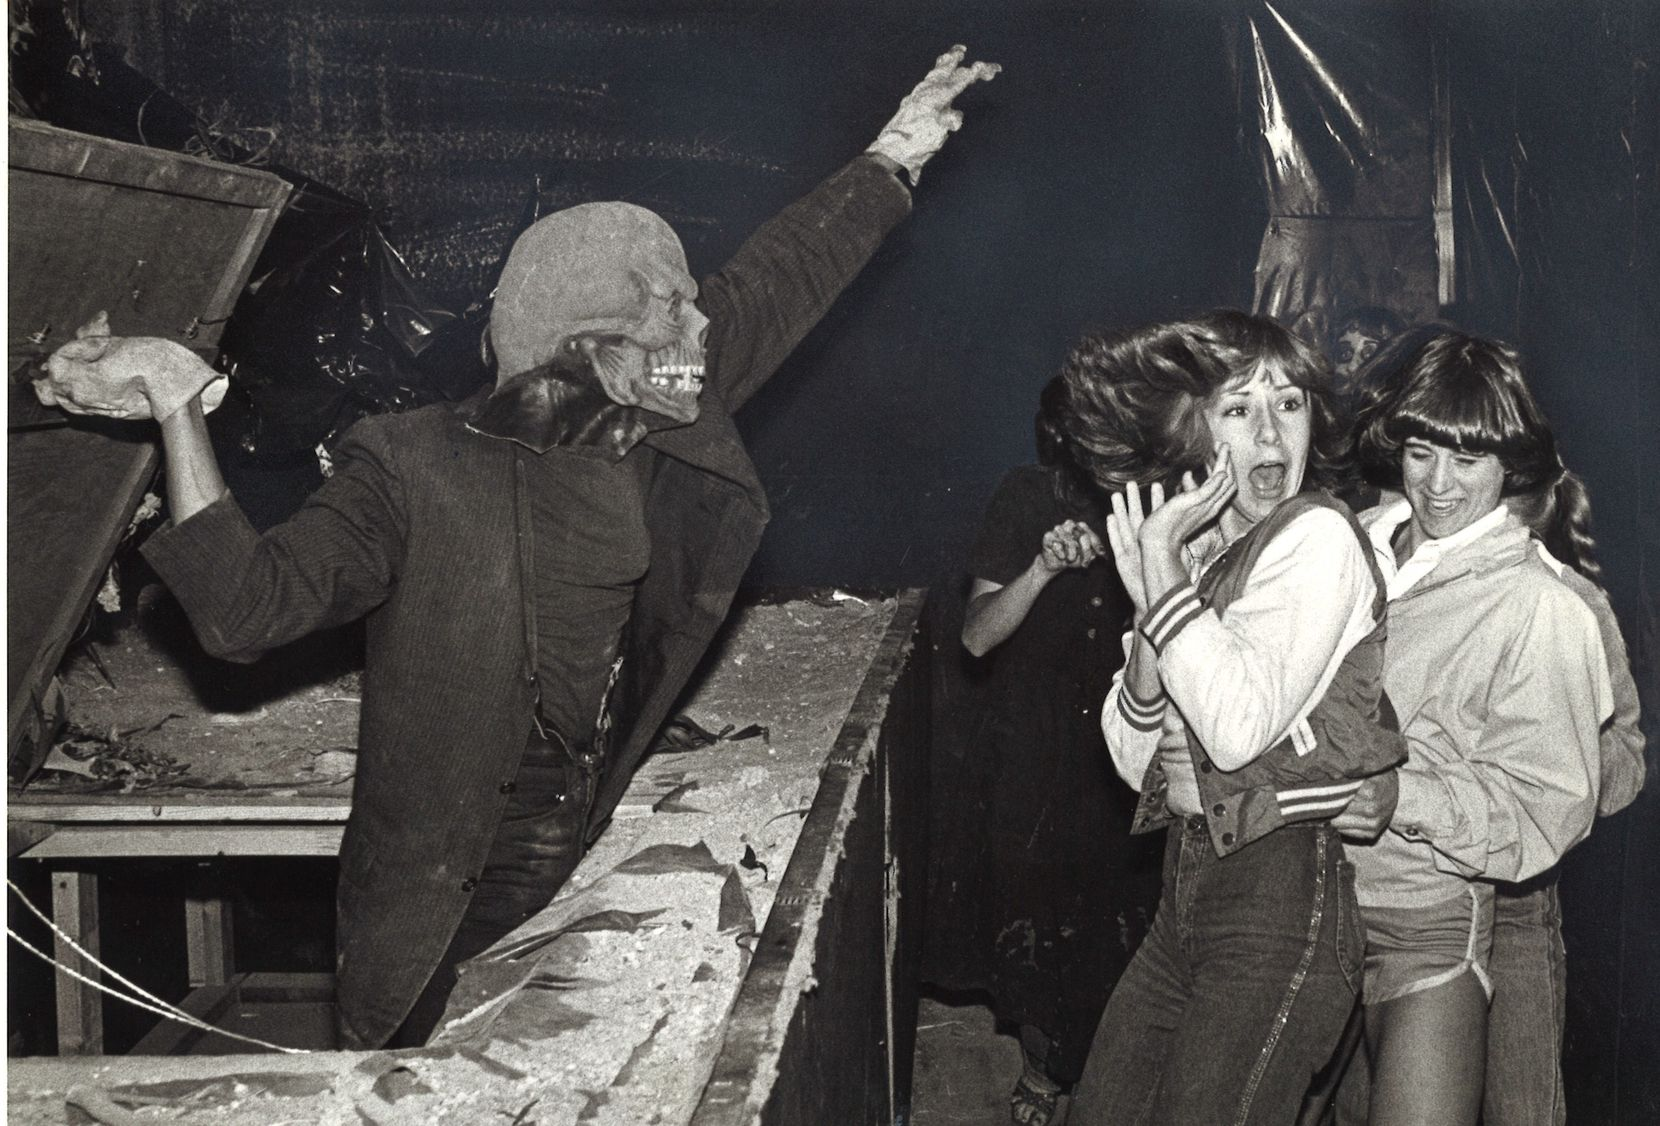 Ghoul Jerry Fleming scares Marie Rossman (center) of Carrollton and Amy Walker at the March of Dimes Haunted House on Halloween Night in 1979.